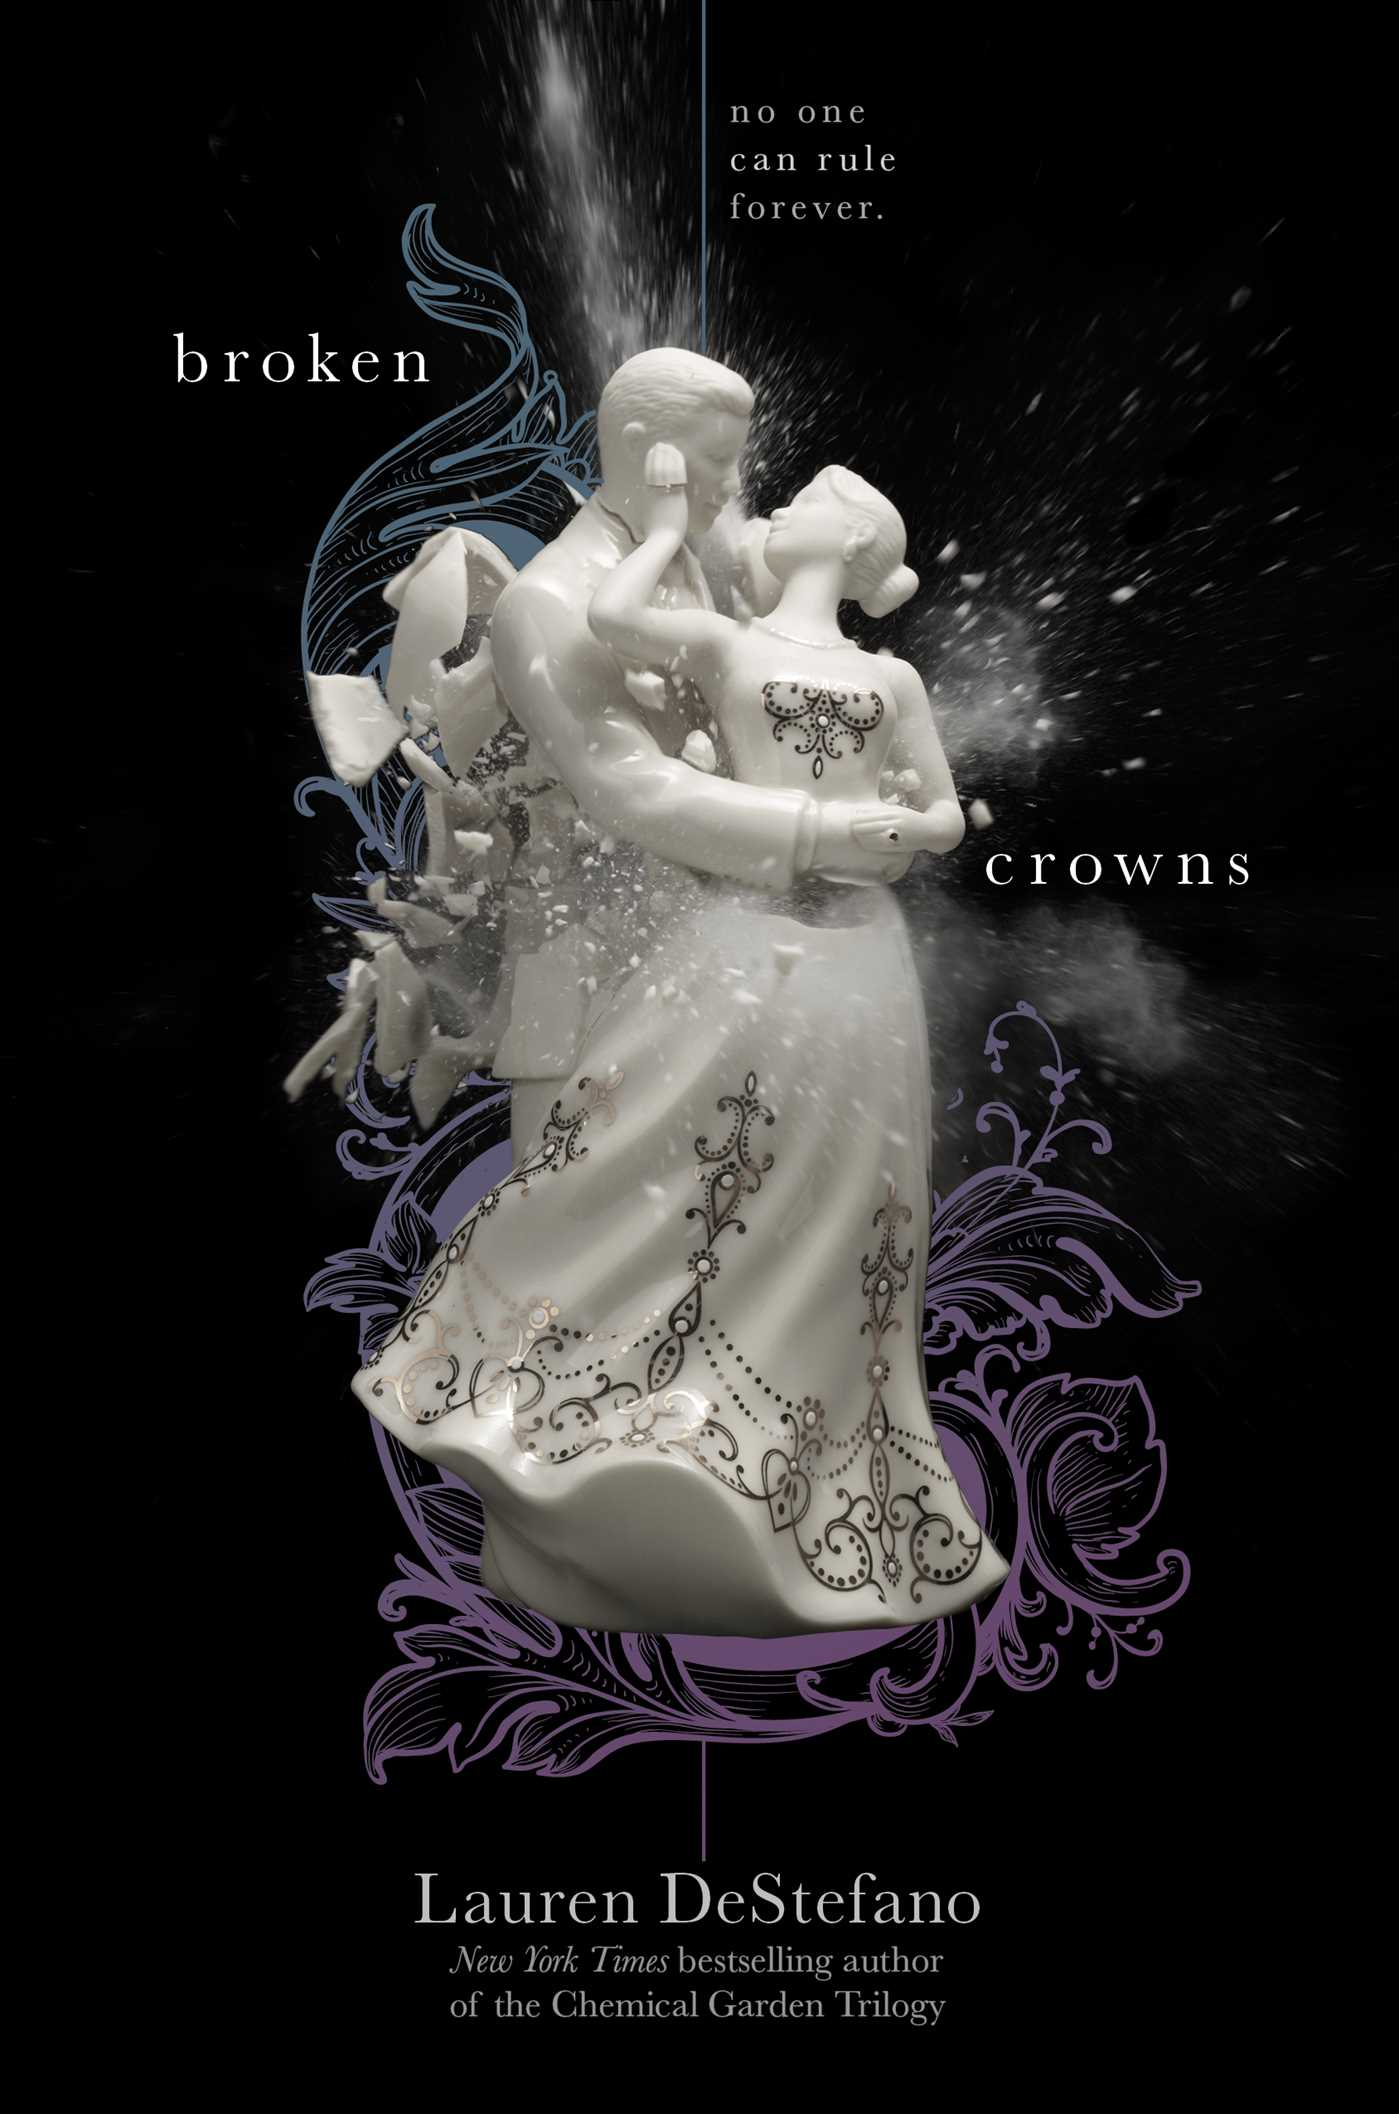 Broken crowns 9781442496378 hr